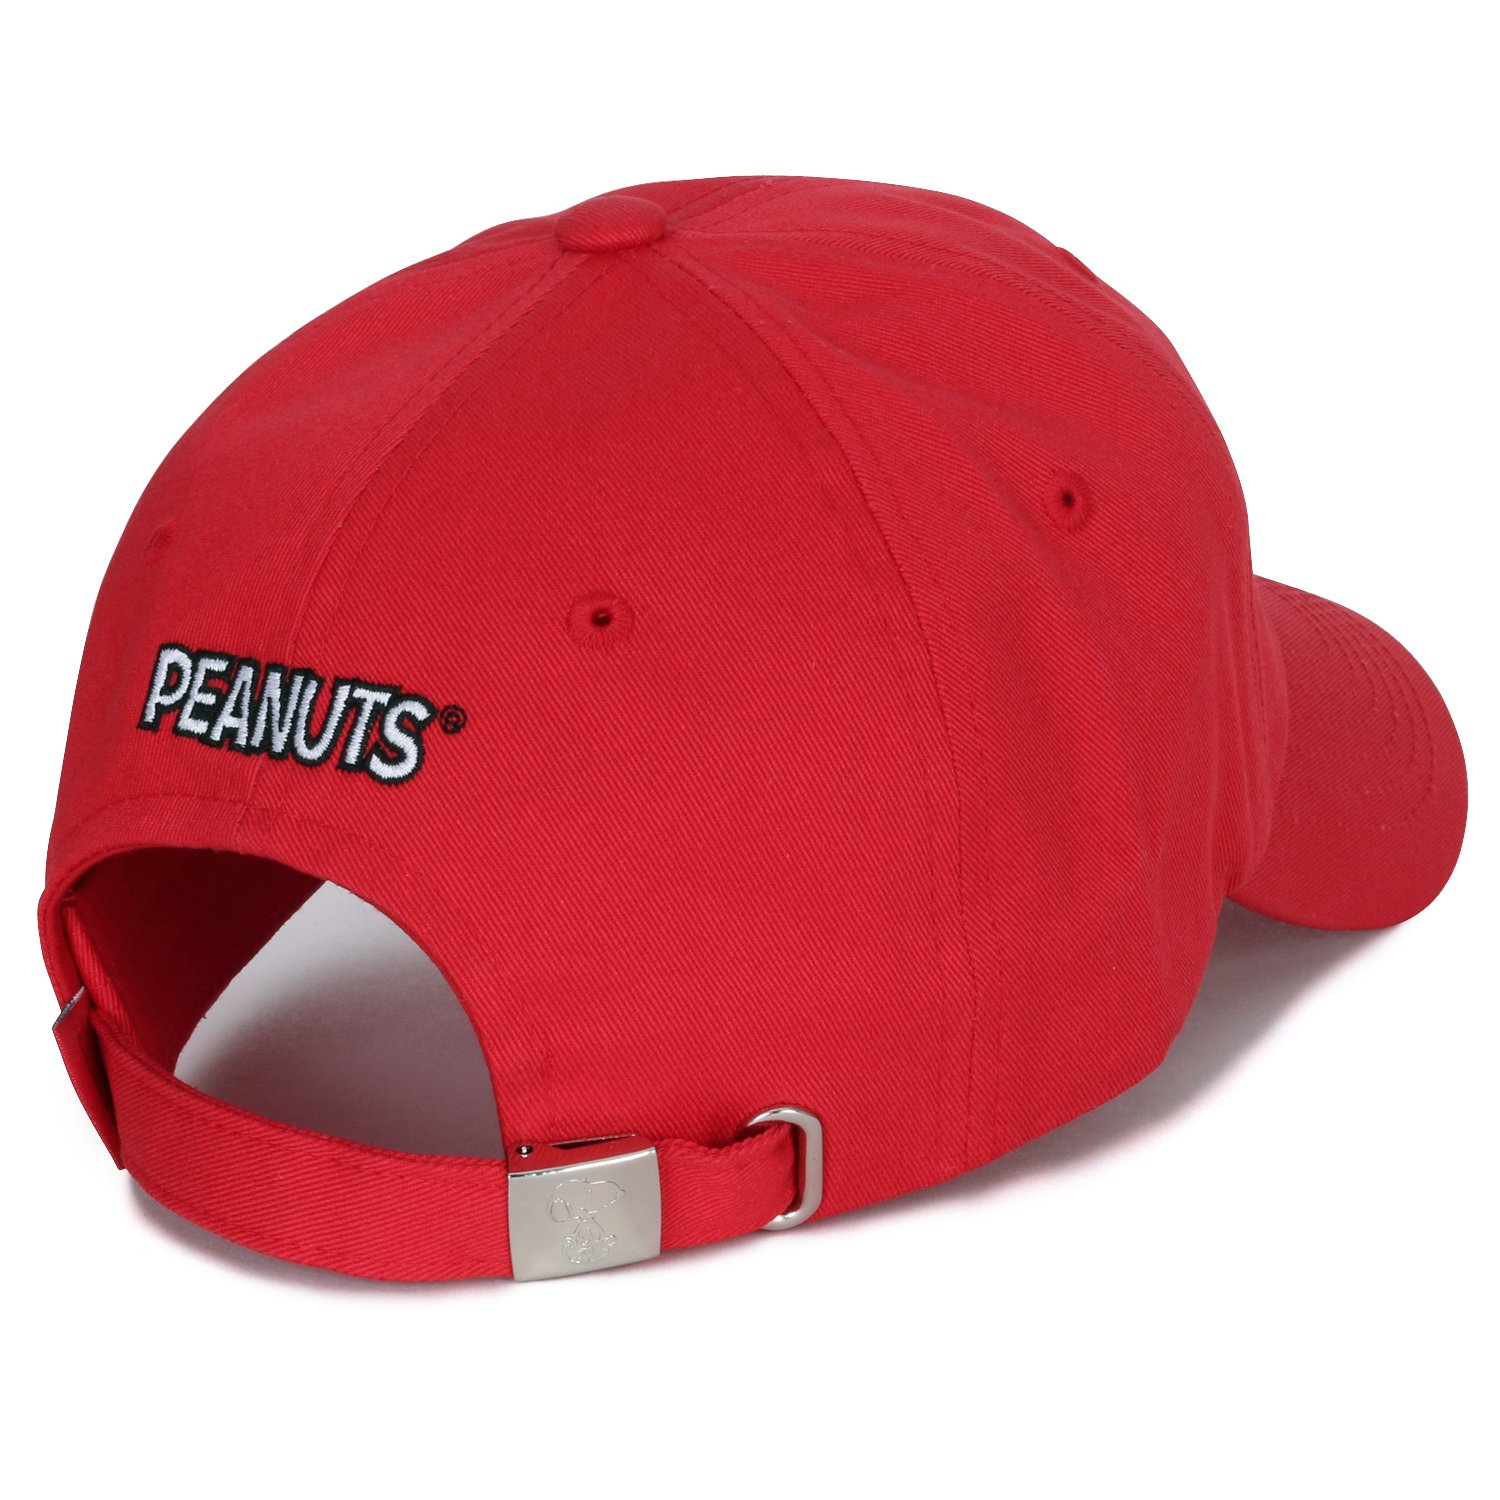 630683a24f4 Peanuts Cotton Solid Color Cute Snoopy Embroidery Curved Casual Hat  Baseball Cap (ballcap-1330-6)  Amazon.co.uk  Clothing